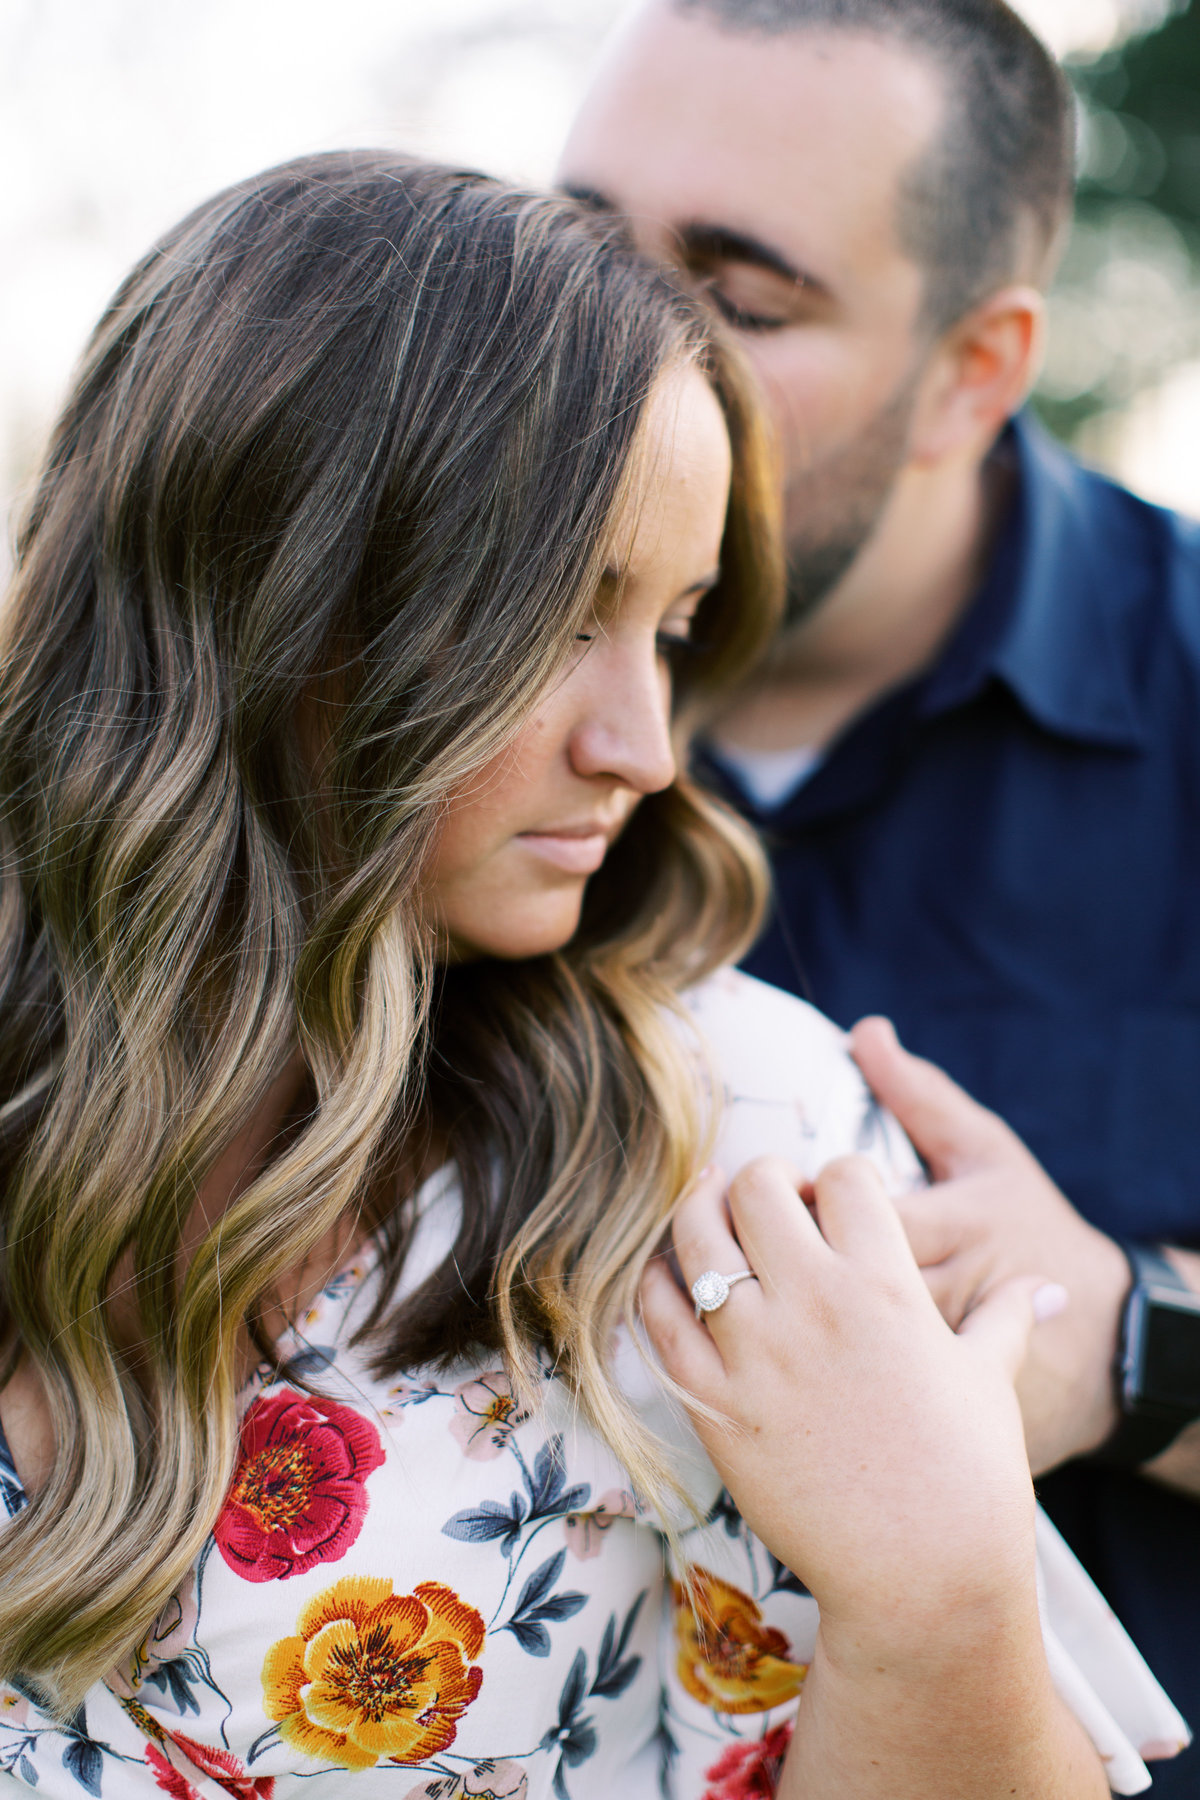 LizAndy_Engagement_June112019_80